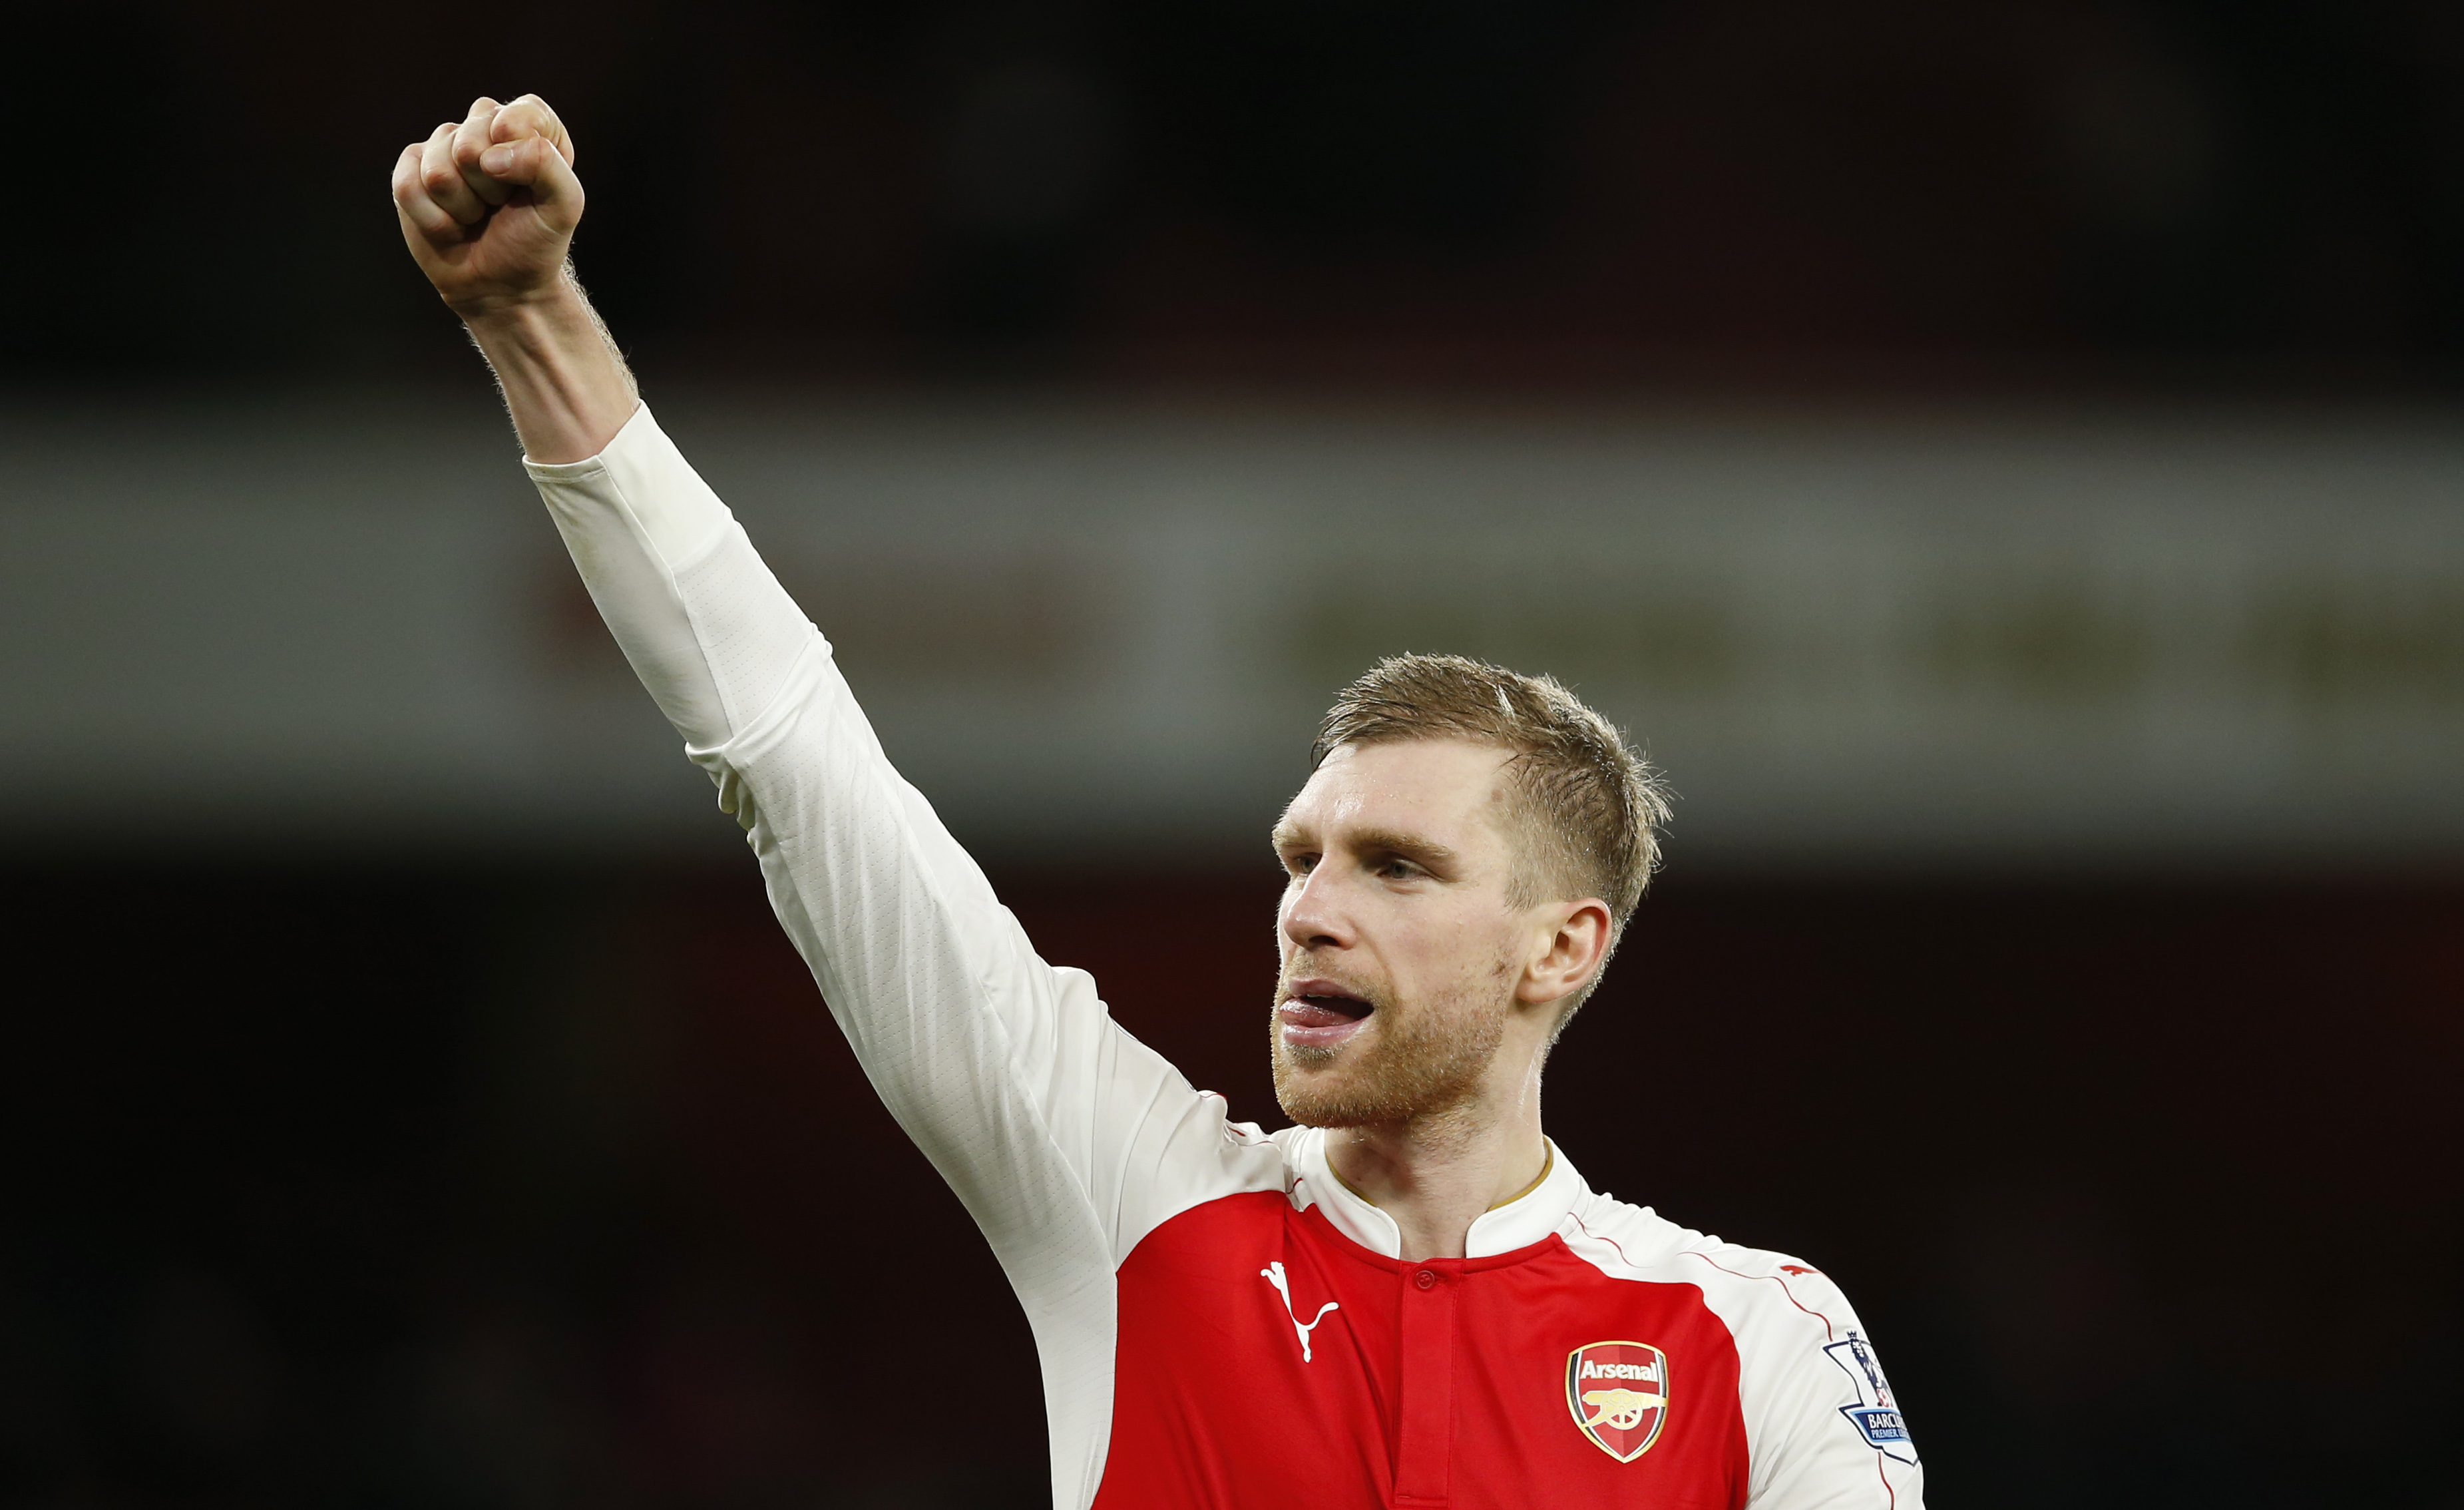 Arsenal's Per Mertesacker celebrates after the game against Manchester City at Emirates Stadium on Monday, December 21, 2015. Photo: Reuters